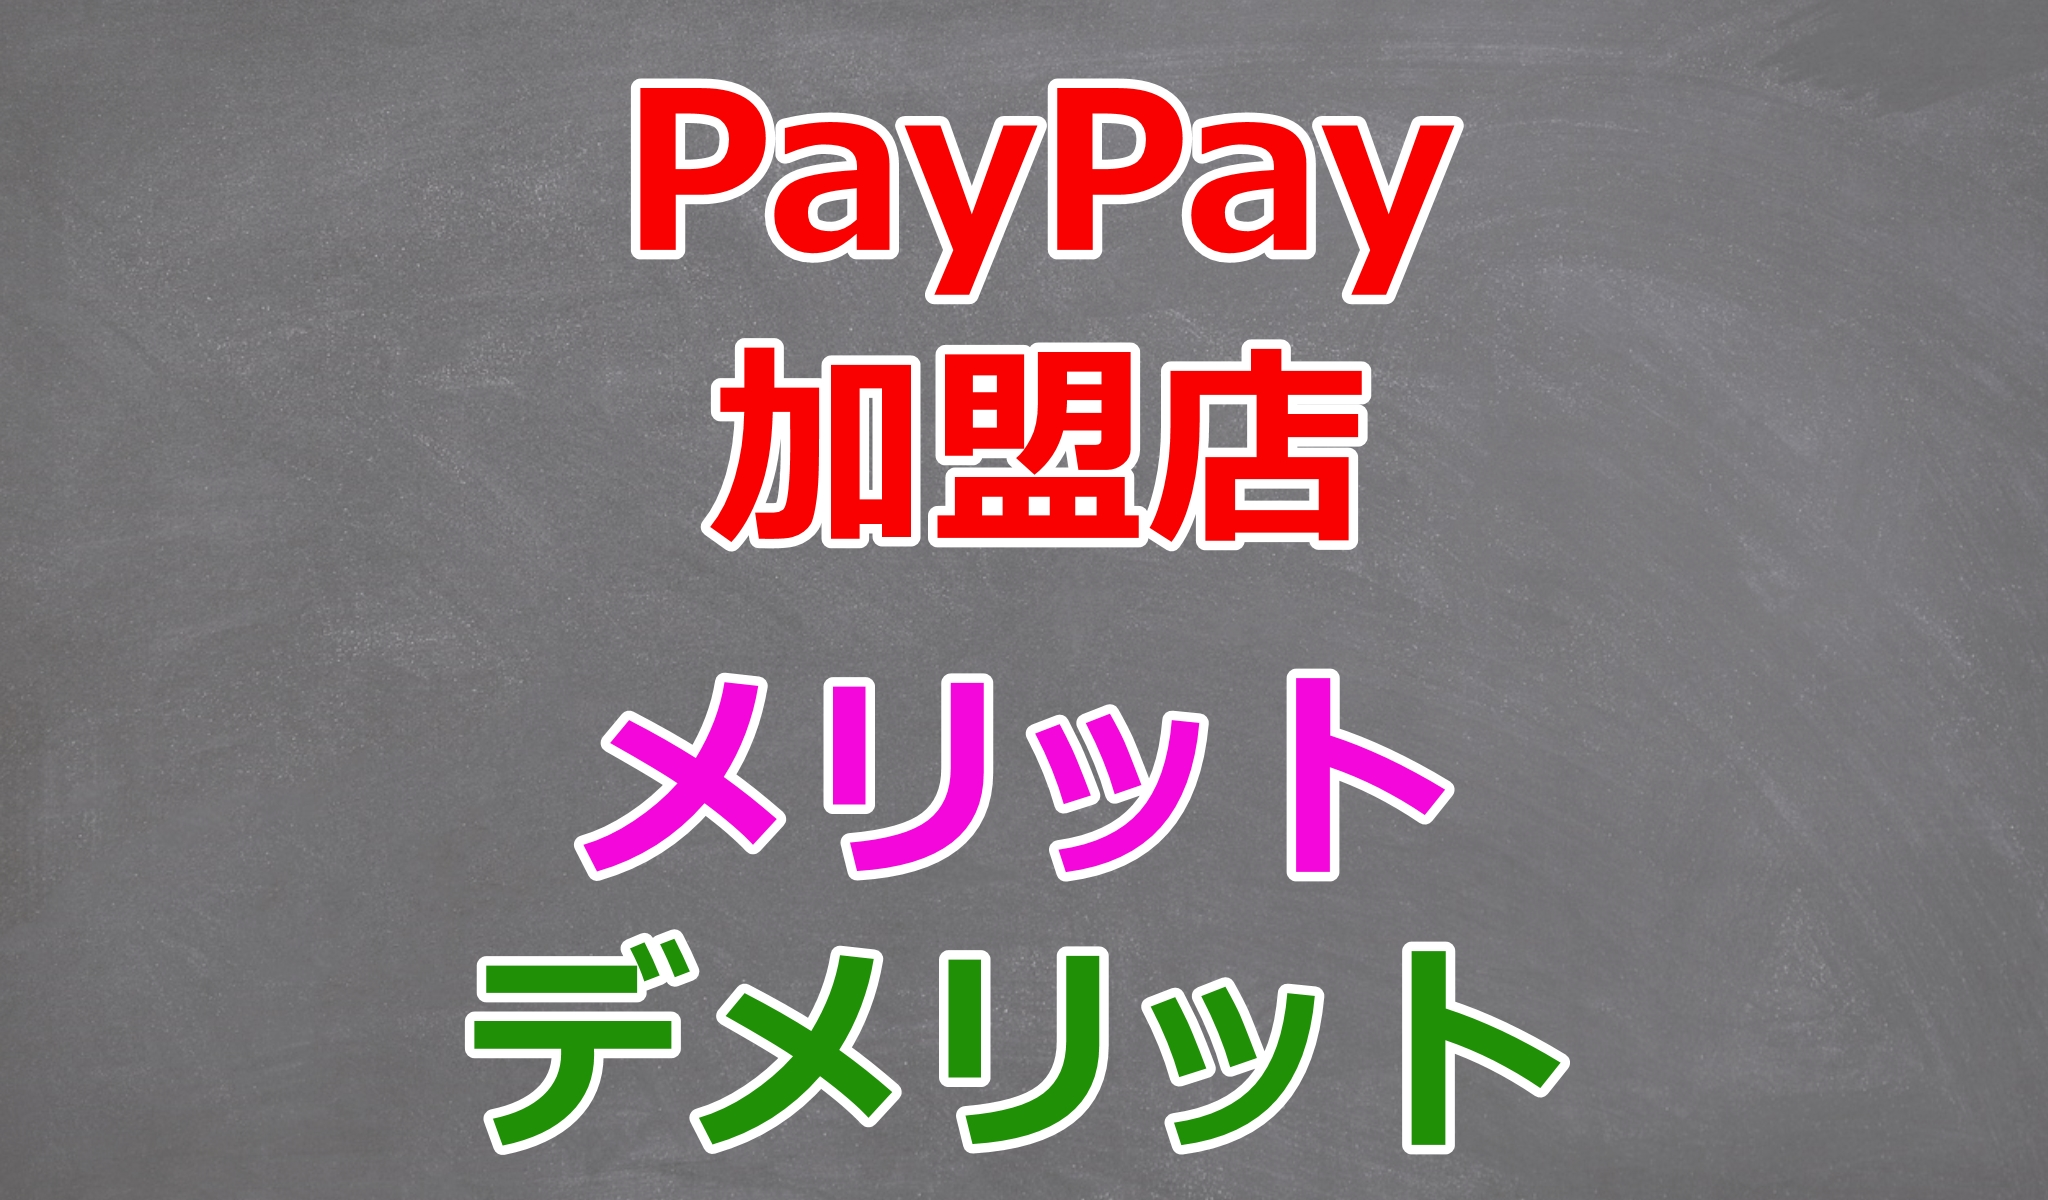 PayPay加盟店のメリットとデメリット